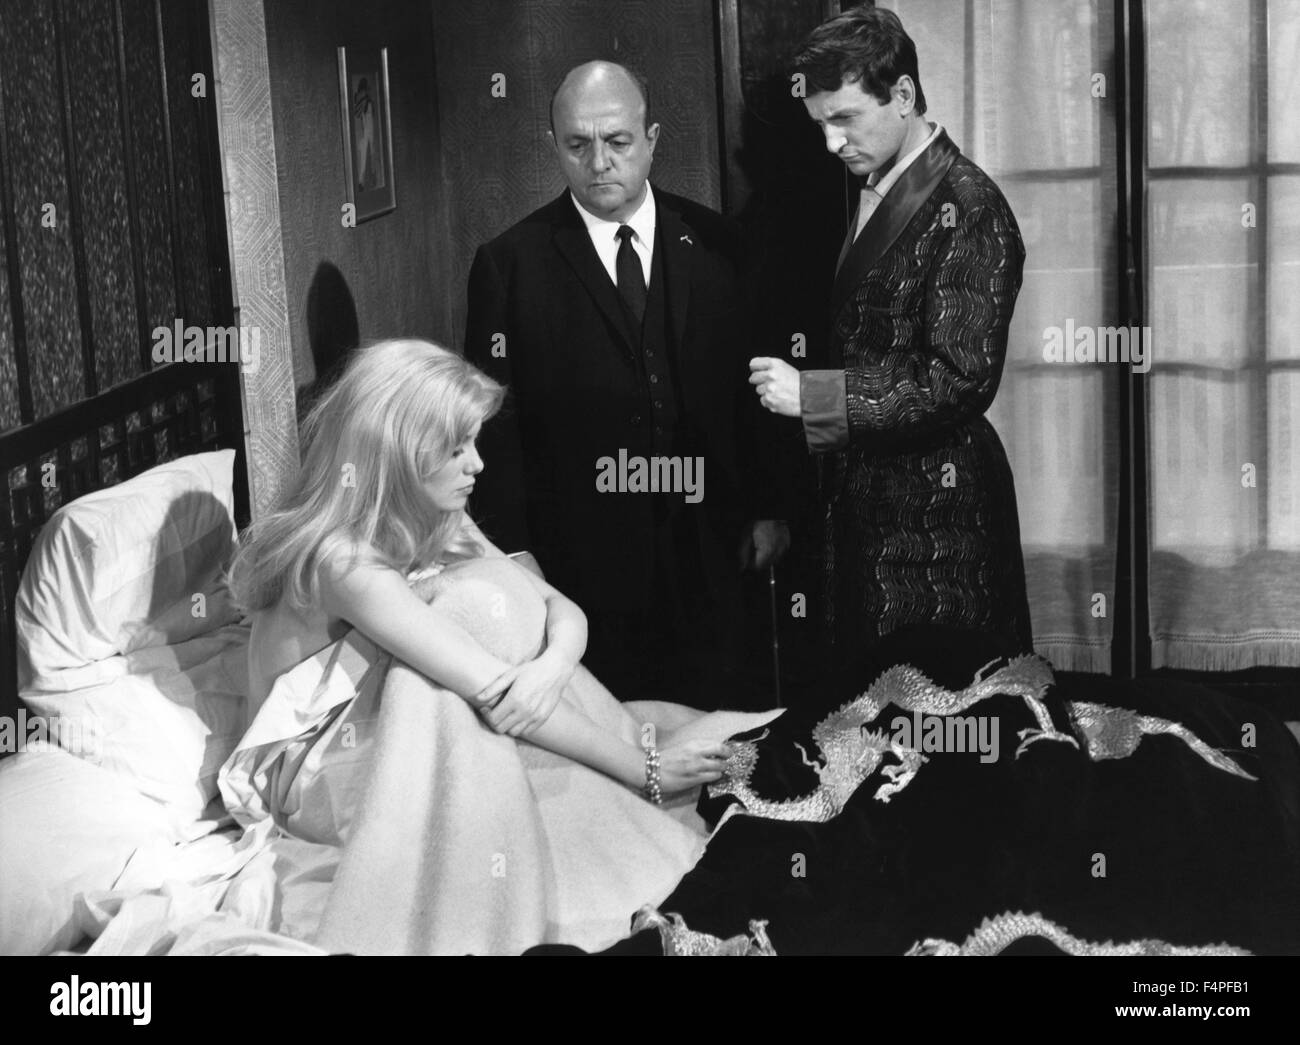 Catherine Deneuve, Bernard Blier and Claude Rich / Male Hunt / 1964 directed by Edouard Molinaro - Stock Image